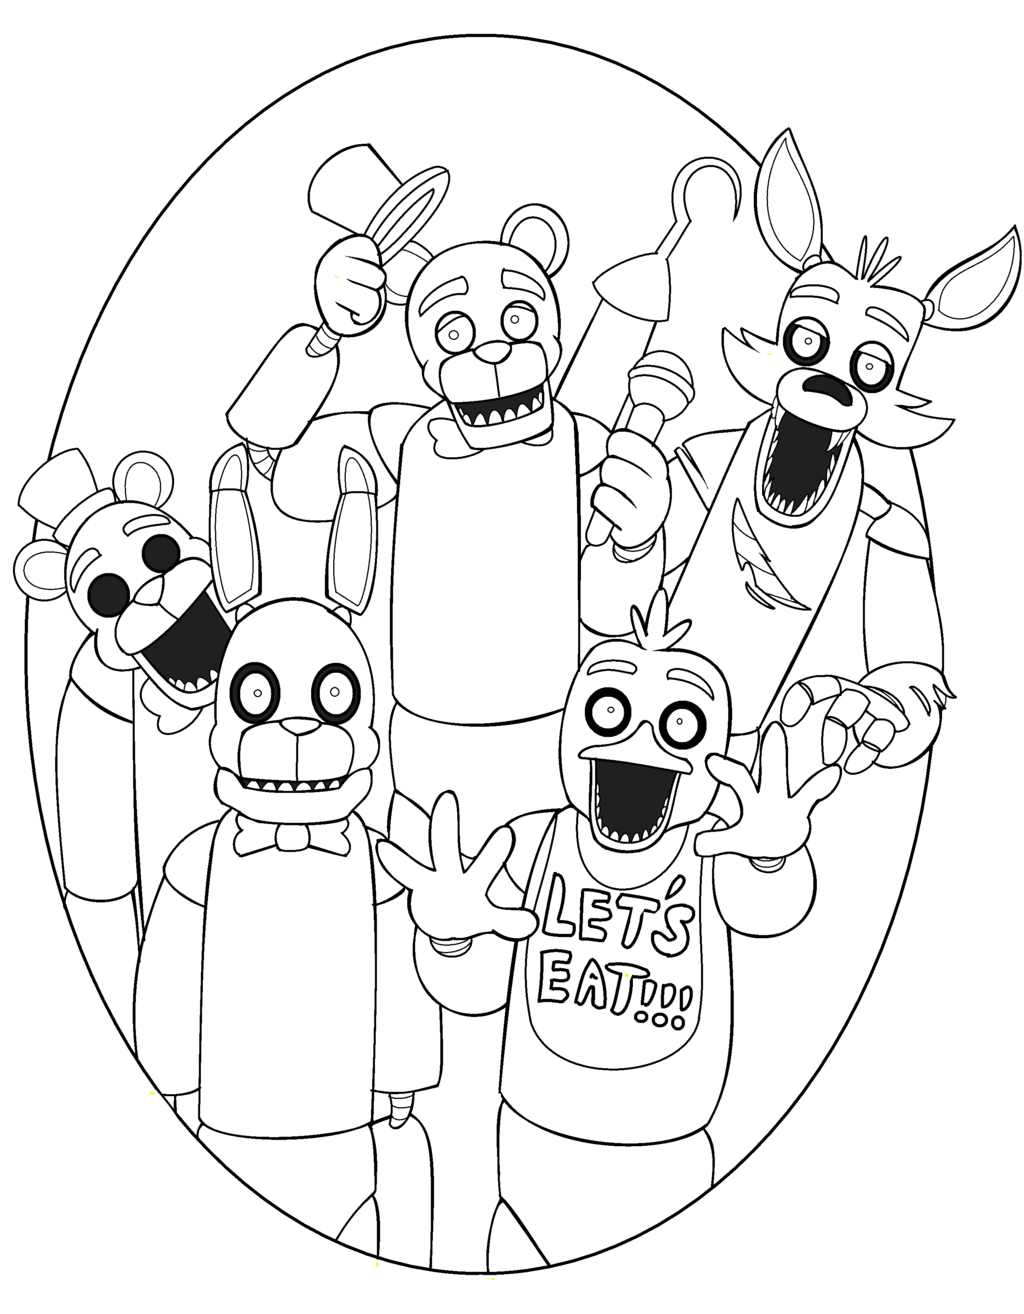 picture relating to Five Nights at Freddy's Printable Coloring Pages referred to as 5 evenings at freddys colouring - Google zoeken Coloring